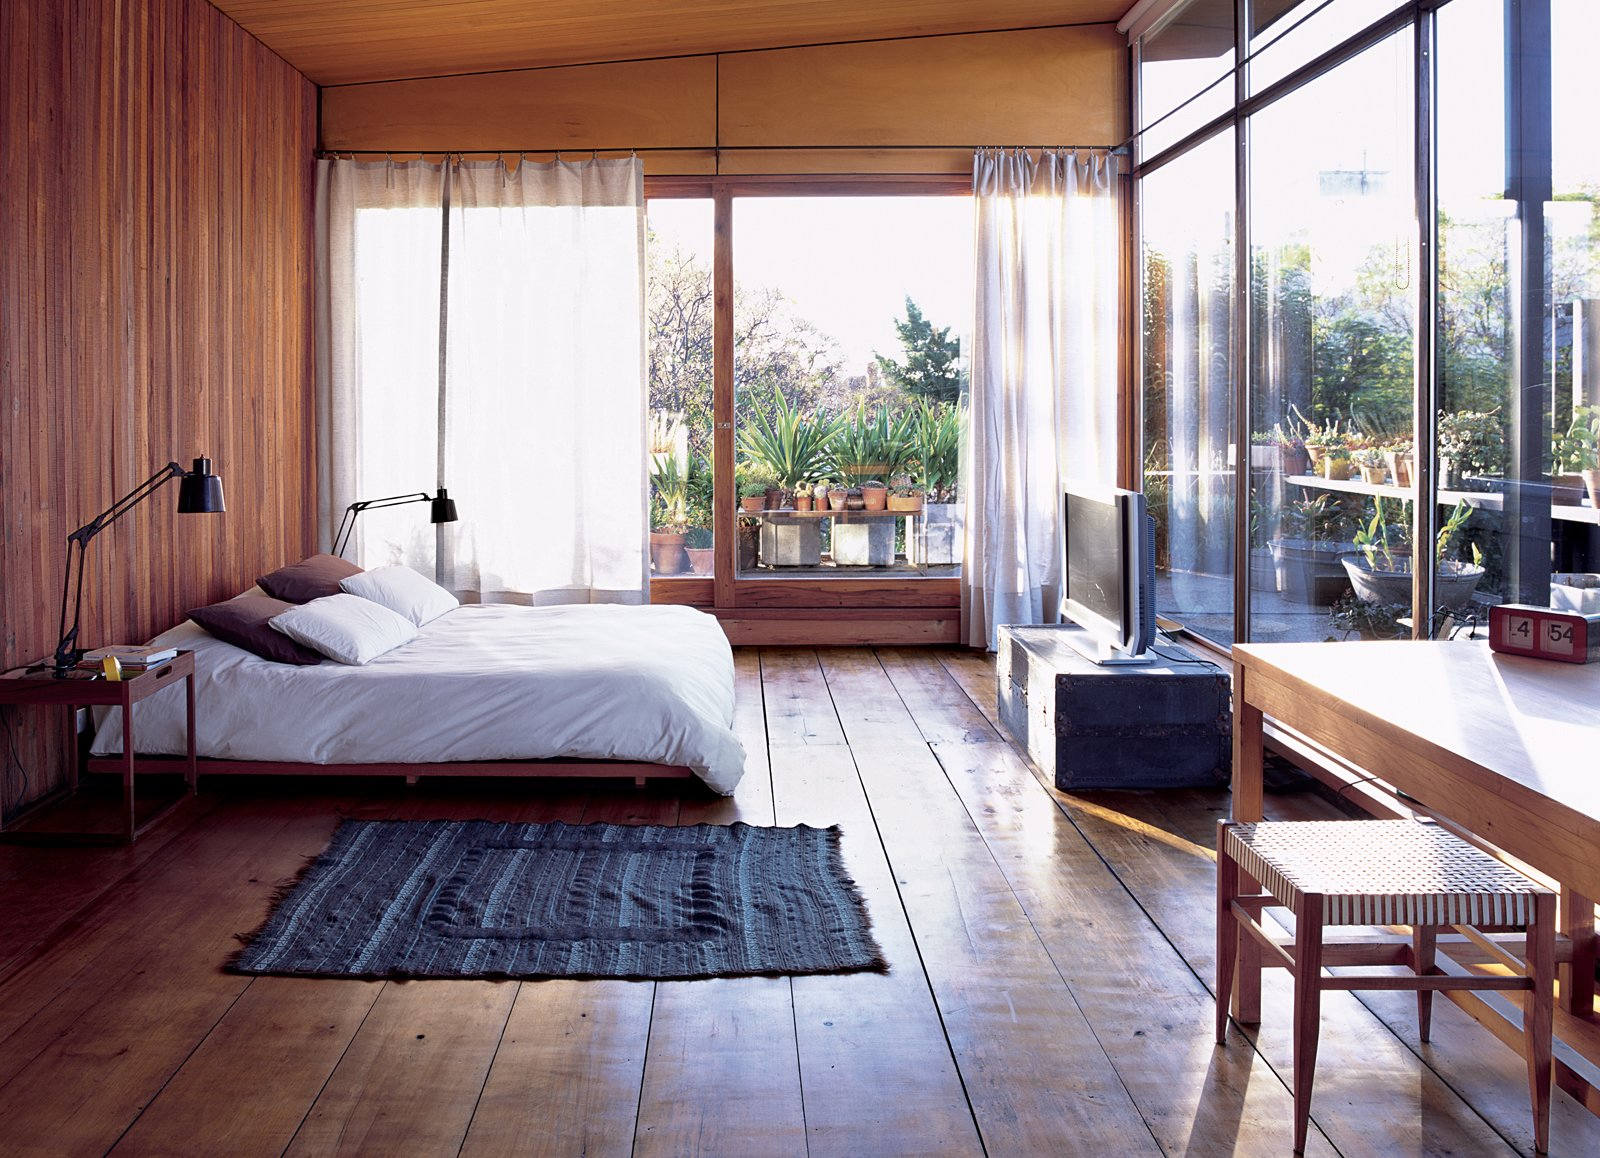 A Cozy And Modern Indoor Outdoor Bedroom In Buenos Aires